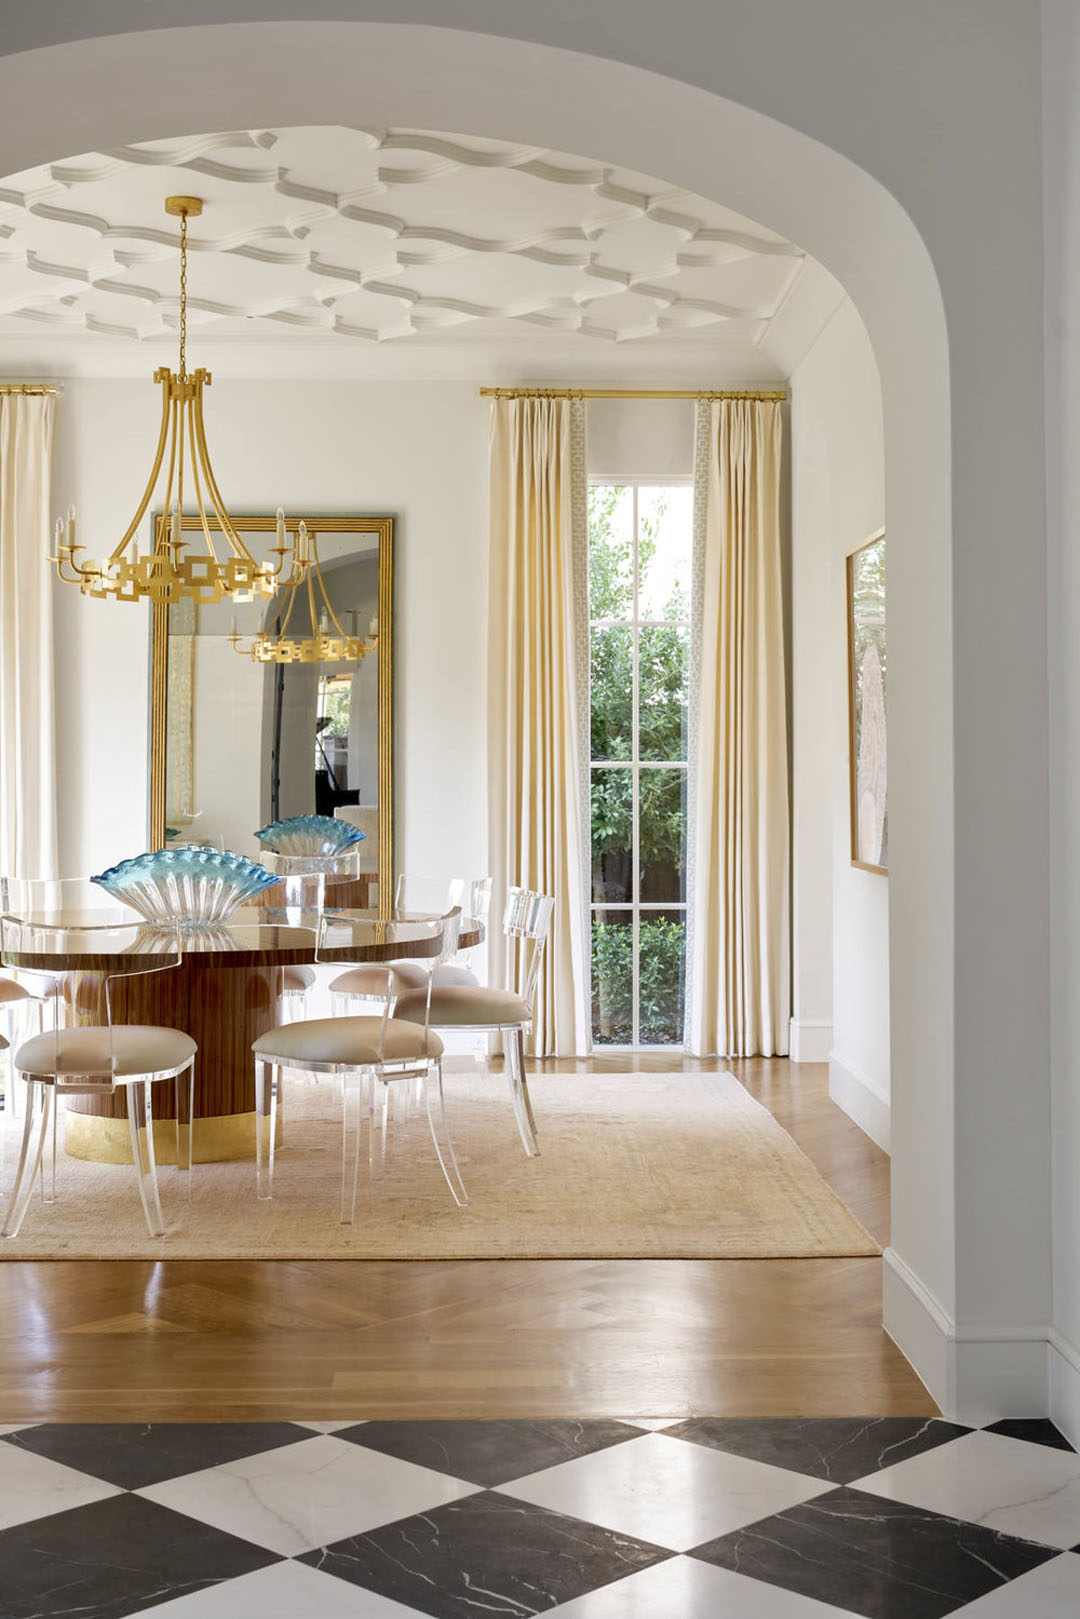 Dining Room with Arabesque-inspired pattern Plaster Ceiling